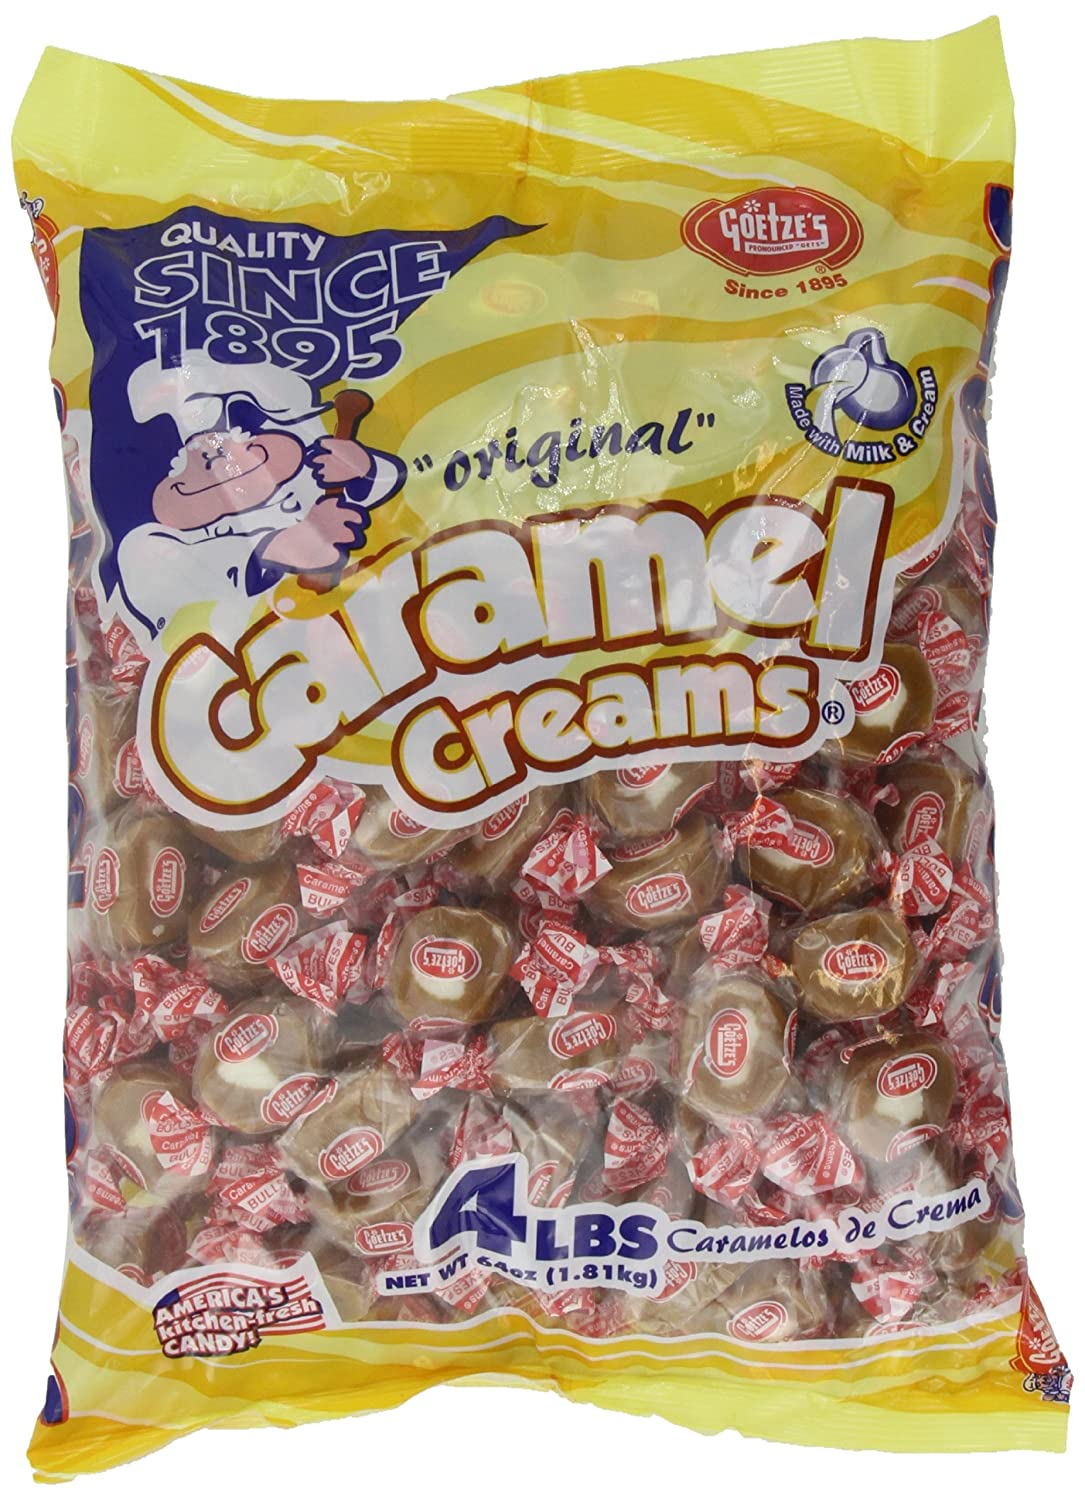 Goetze's Original Caramel Creams Bag 64oz